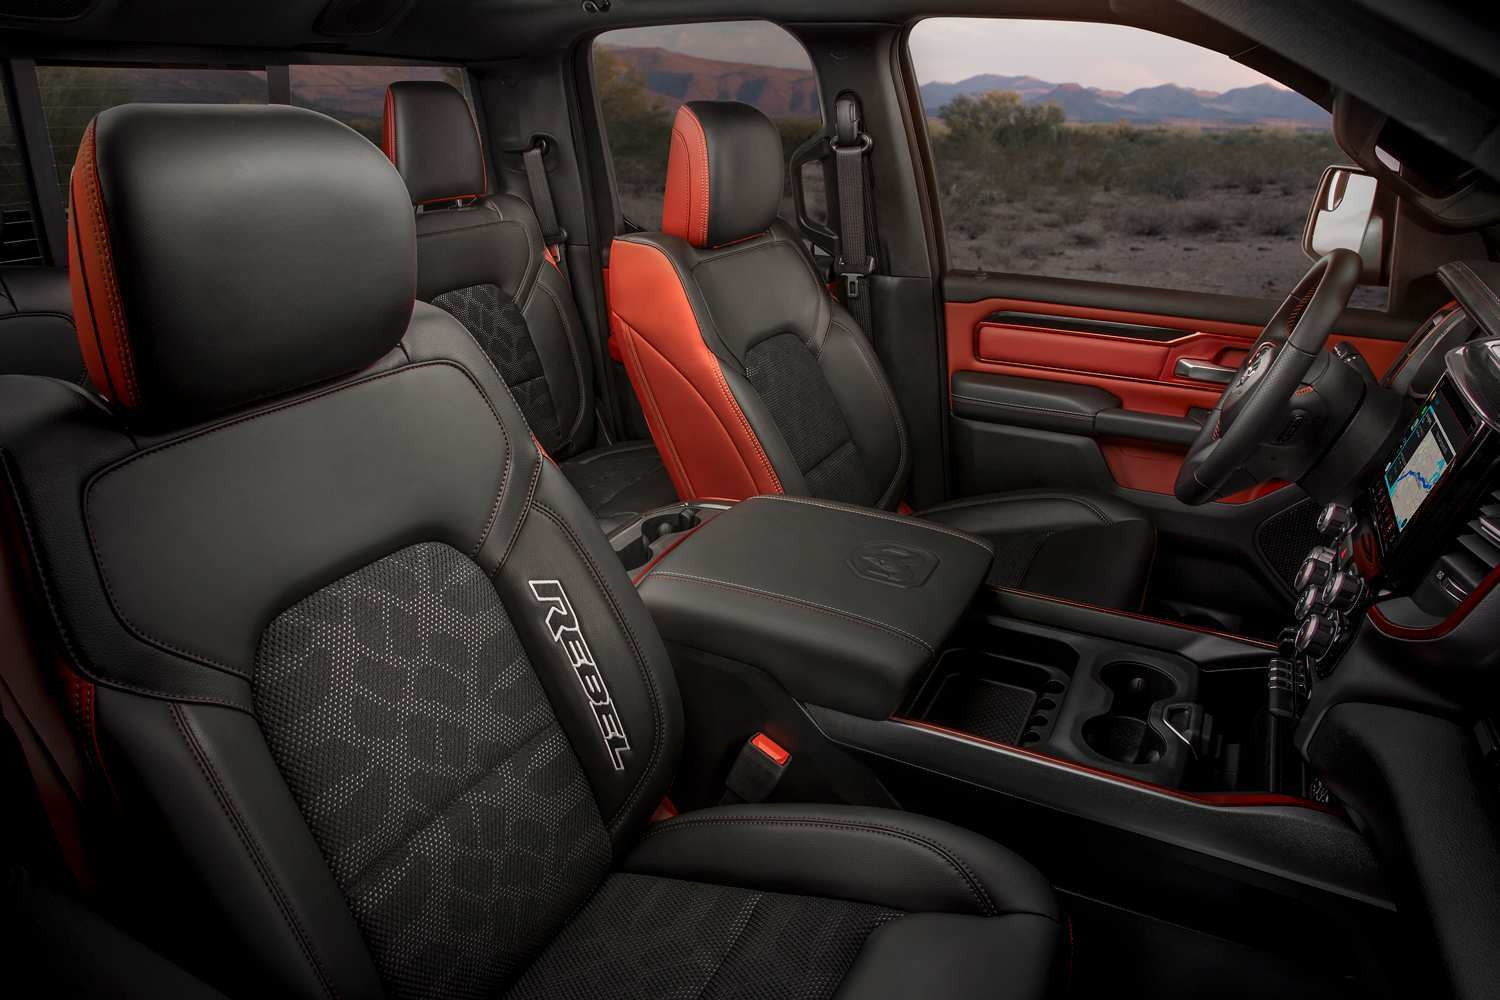 36 Gallery of 2019 Dodge Laramie Interior First Drive for 2019 Dodge Laramie Interior